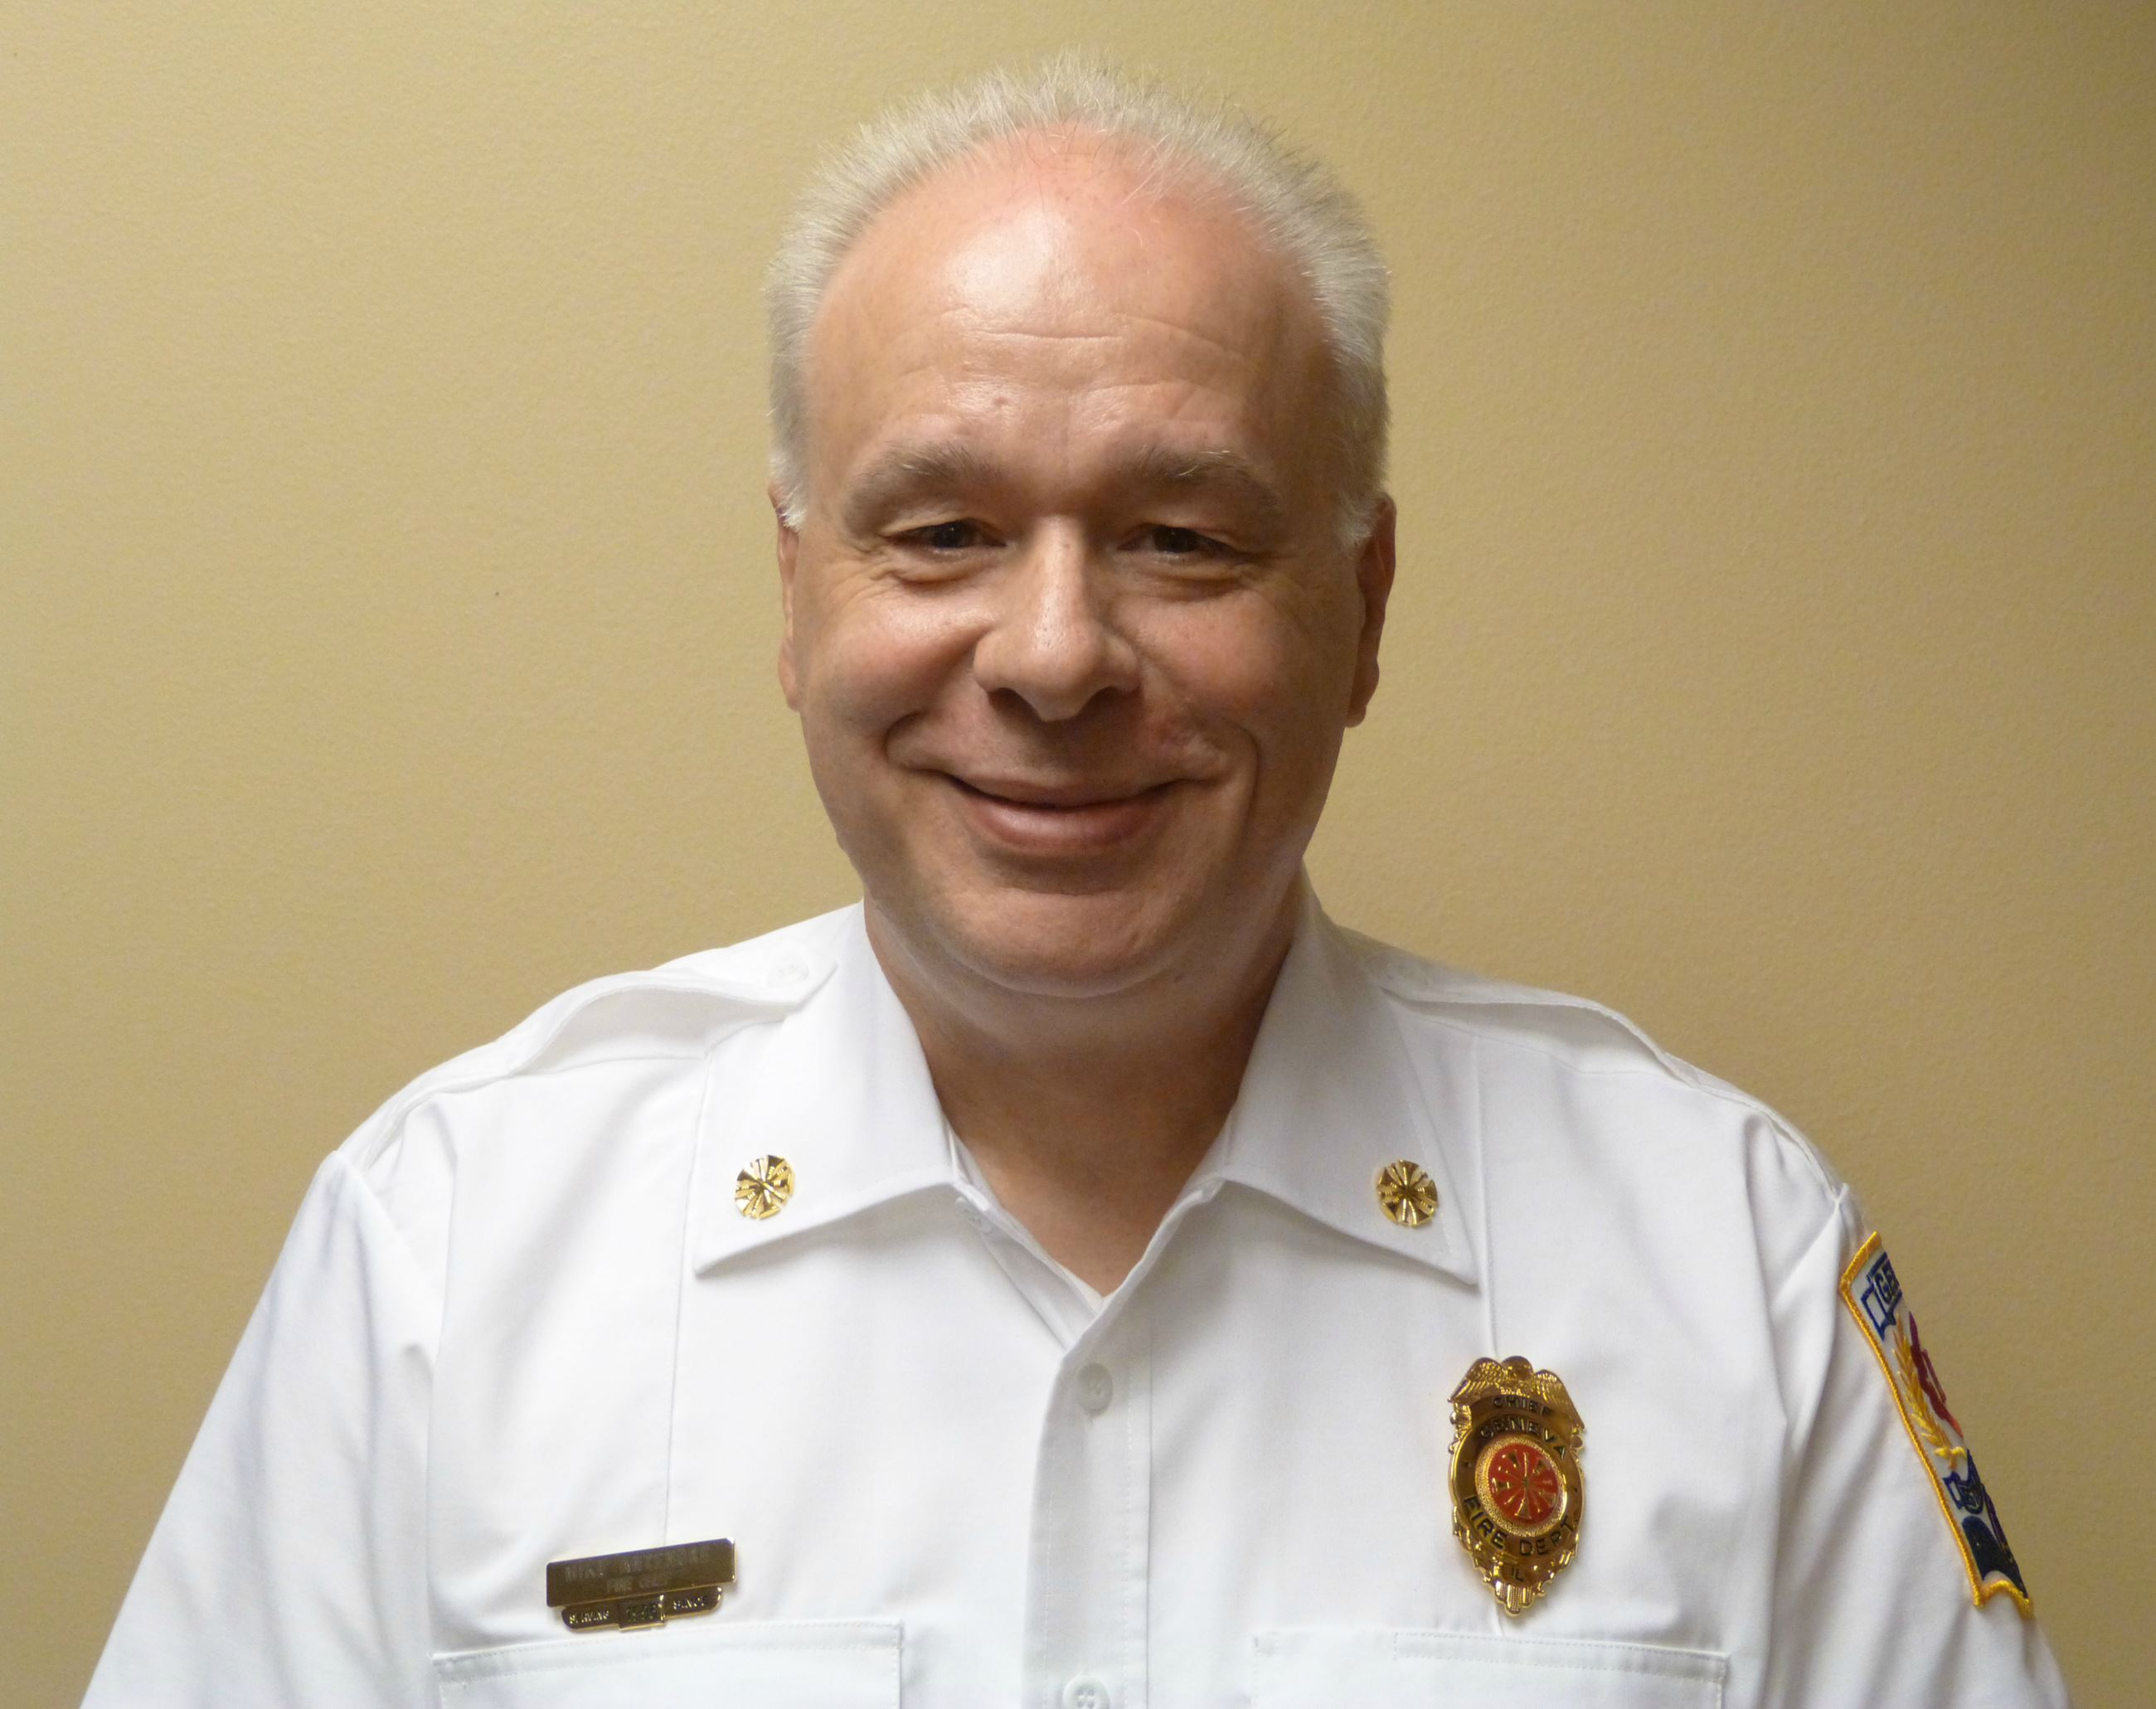 Fire Chief Mike Antenore portrait